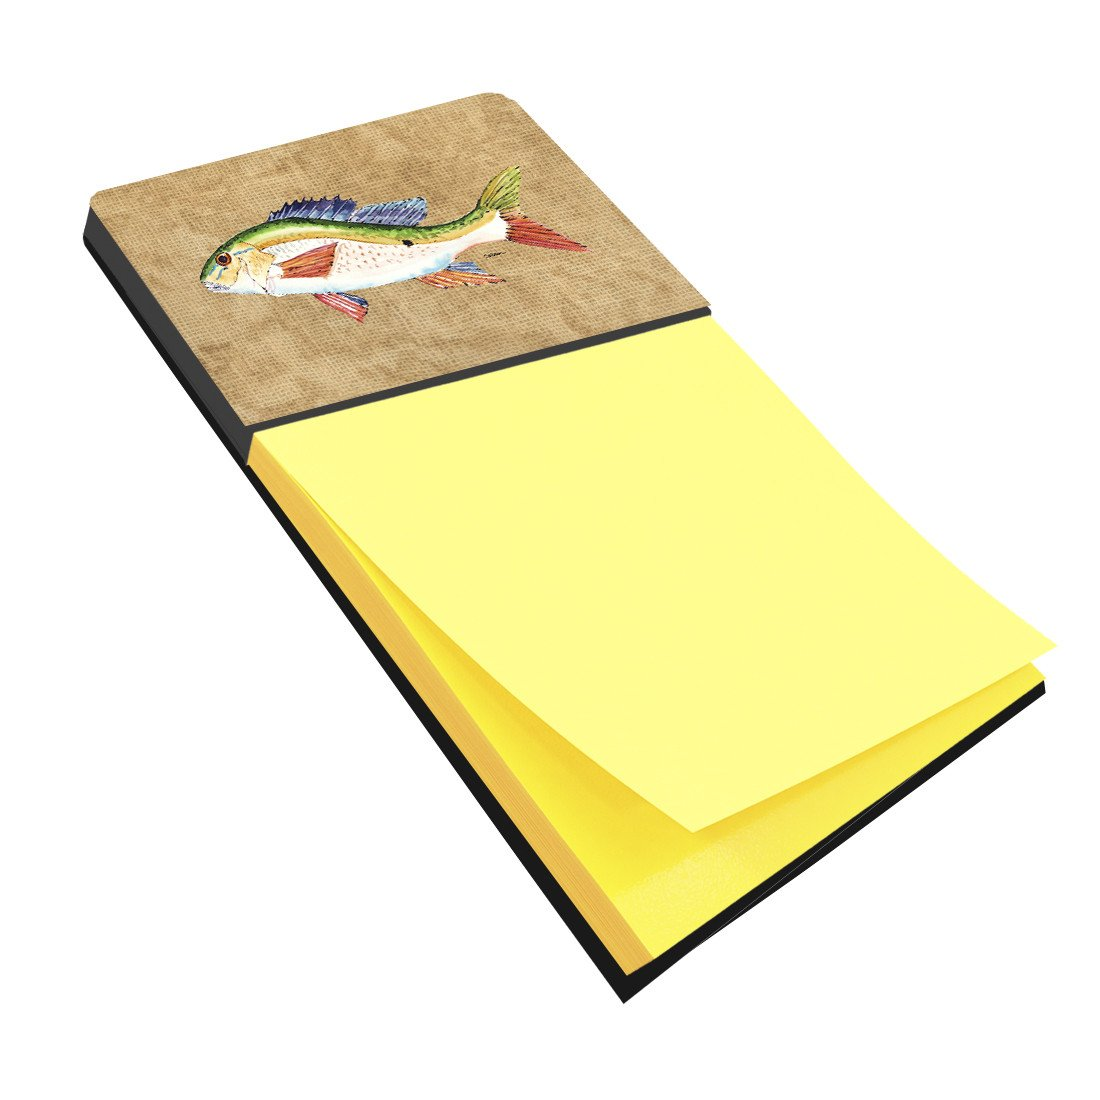 Rainbow Trout Refiillable Sticky Note Holder or Postit Note Dispenser 8816SN by Caroline's Treasures